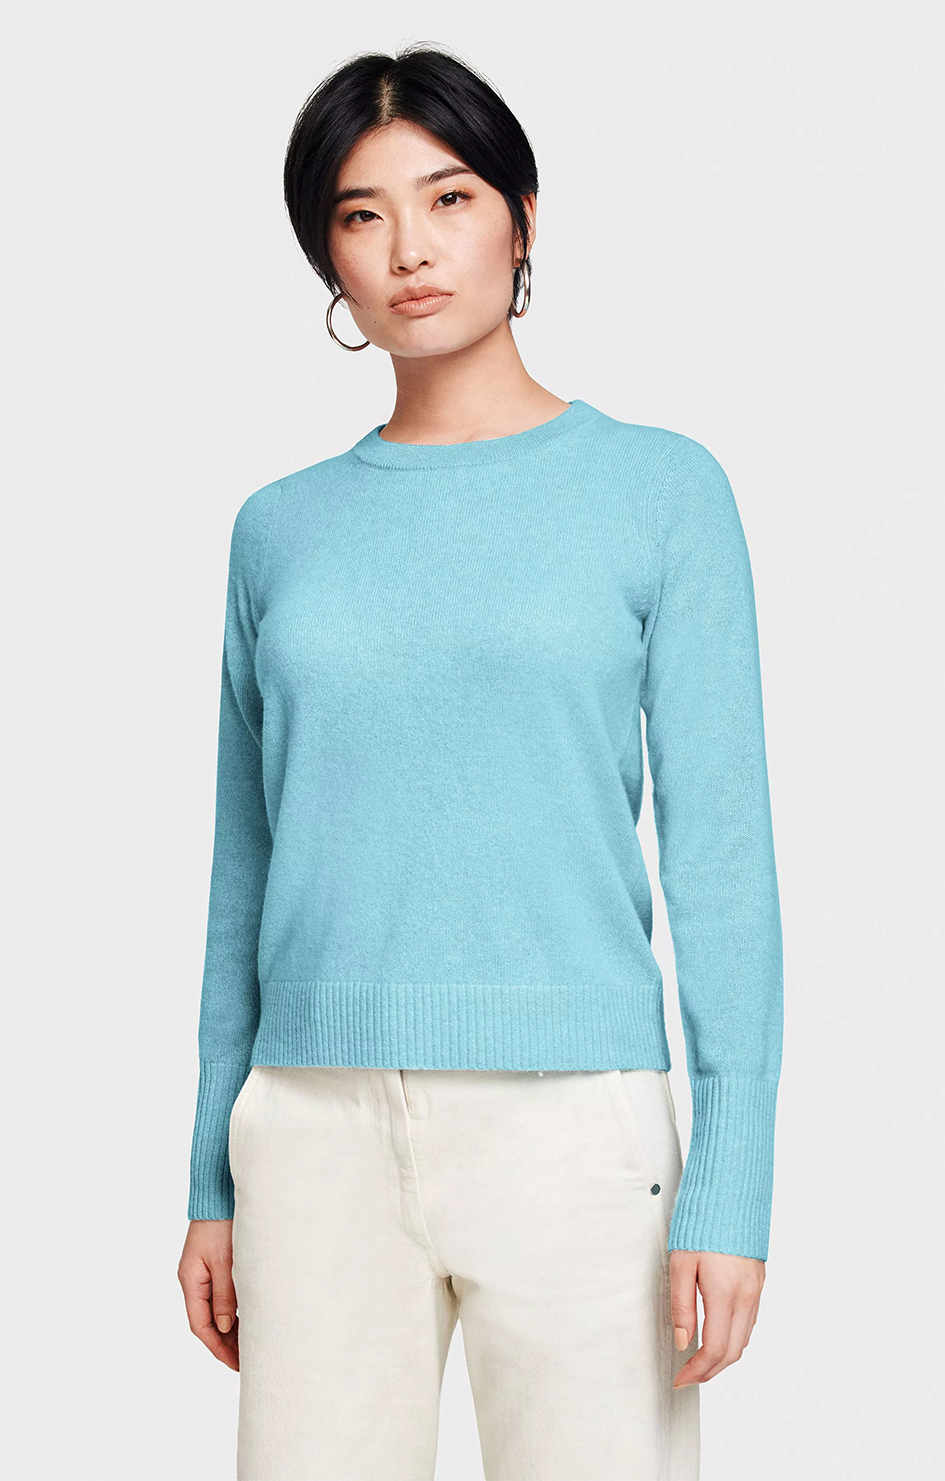 Cashmere Essential Sweatshirt - Blue Bird Heather